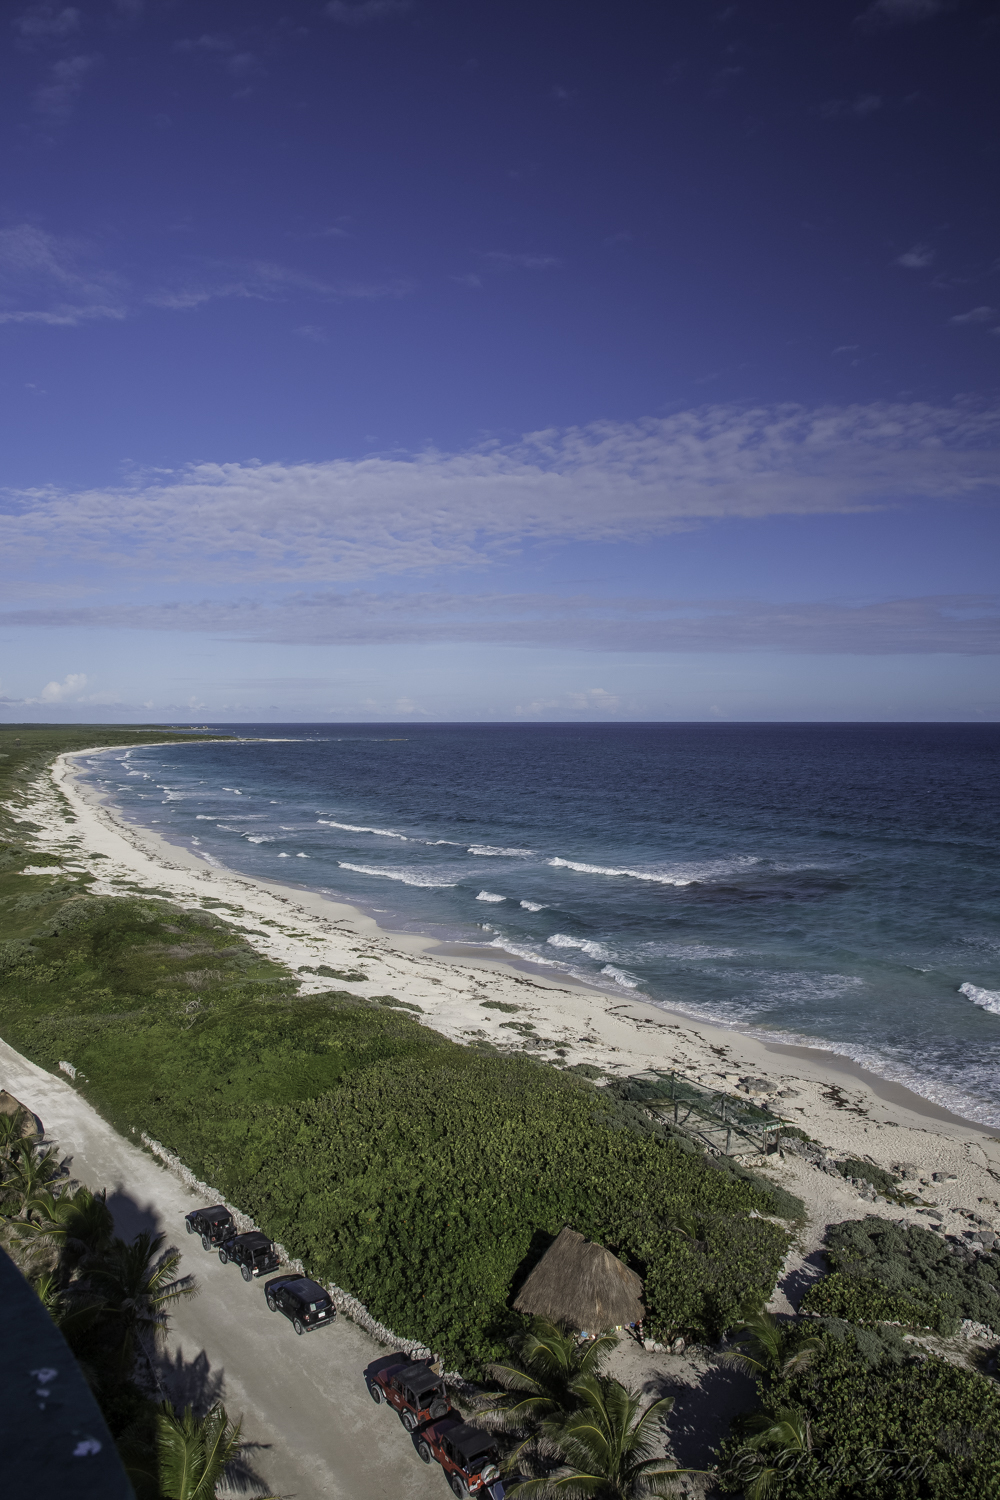 View from top of Punta Sur Lighthouse in Cozumel